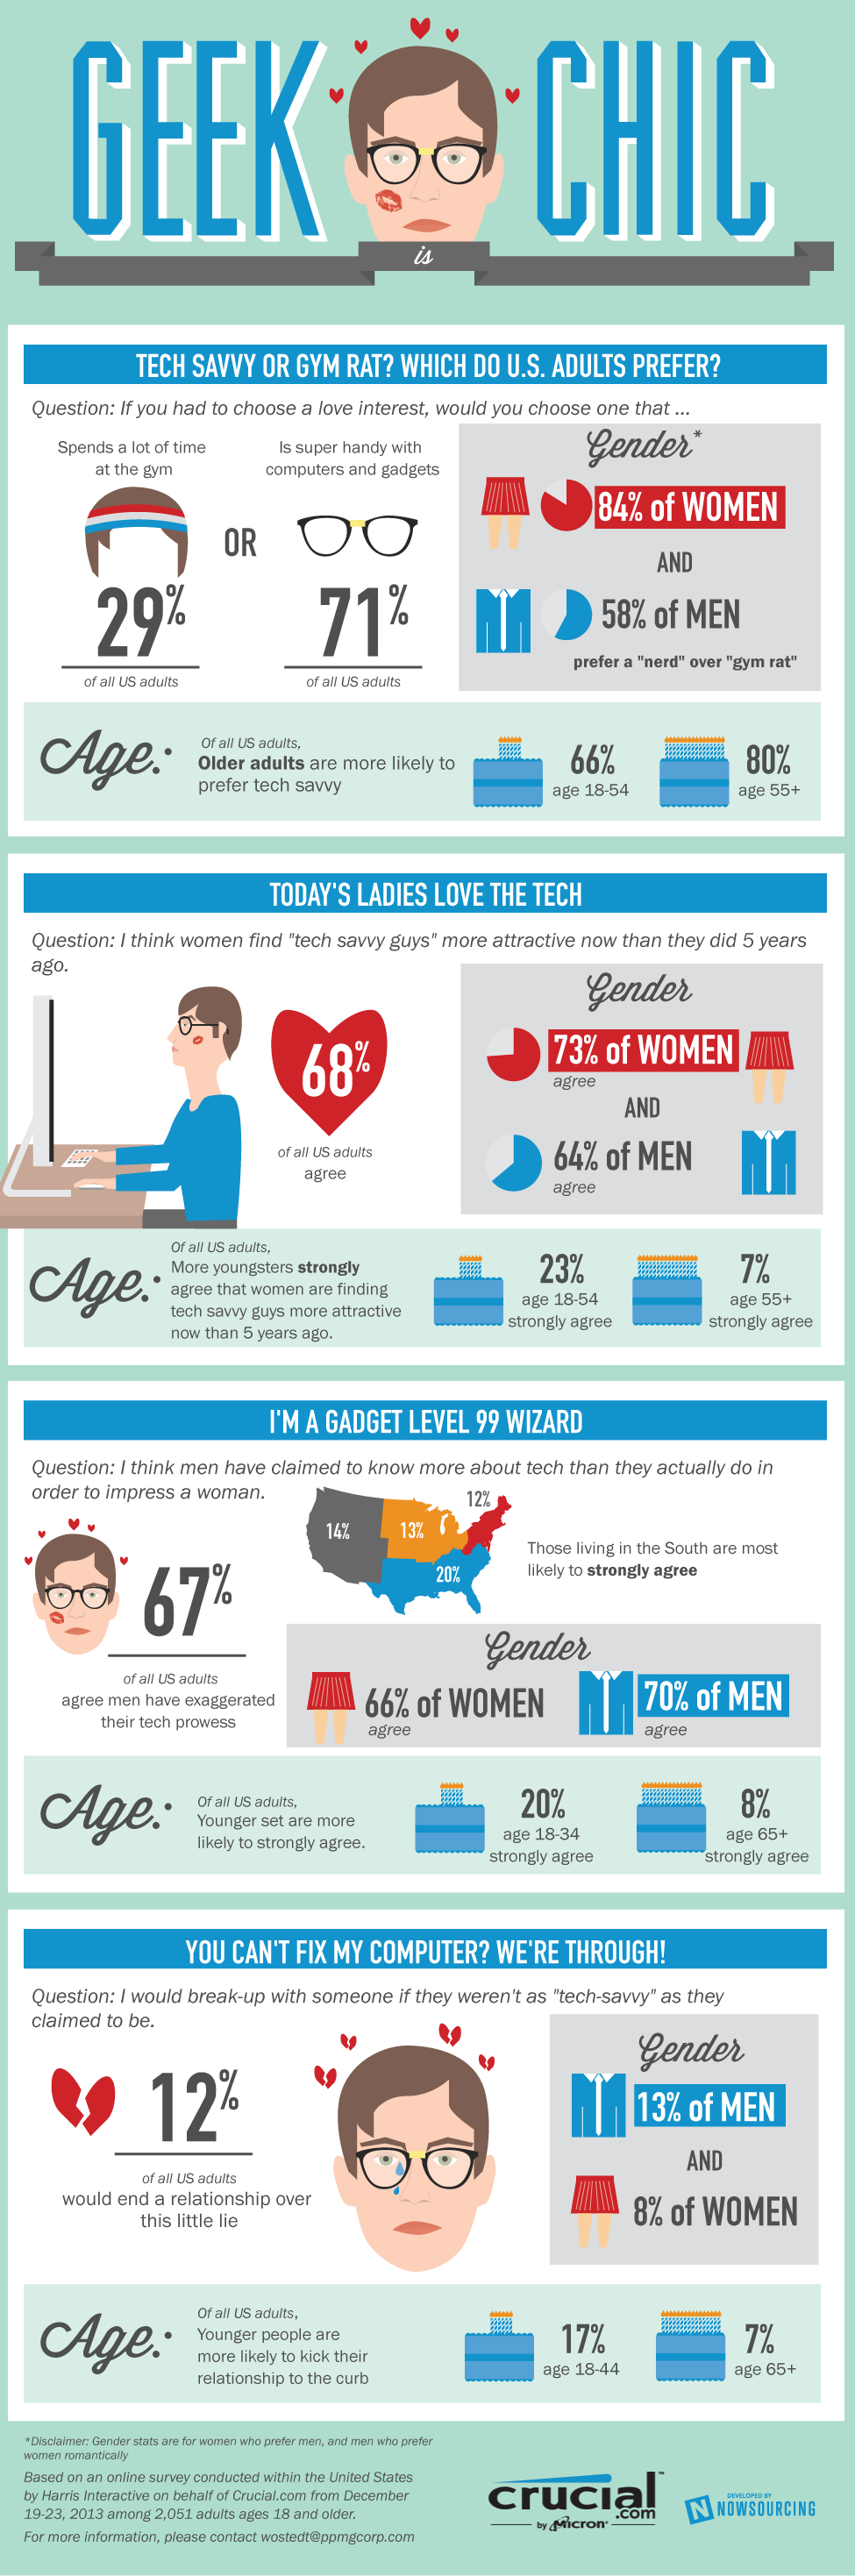 Today's Ladies Love Tech [INFOGRPAHIC] - http://dashburst.com/infographic/ladies-love-tech/